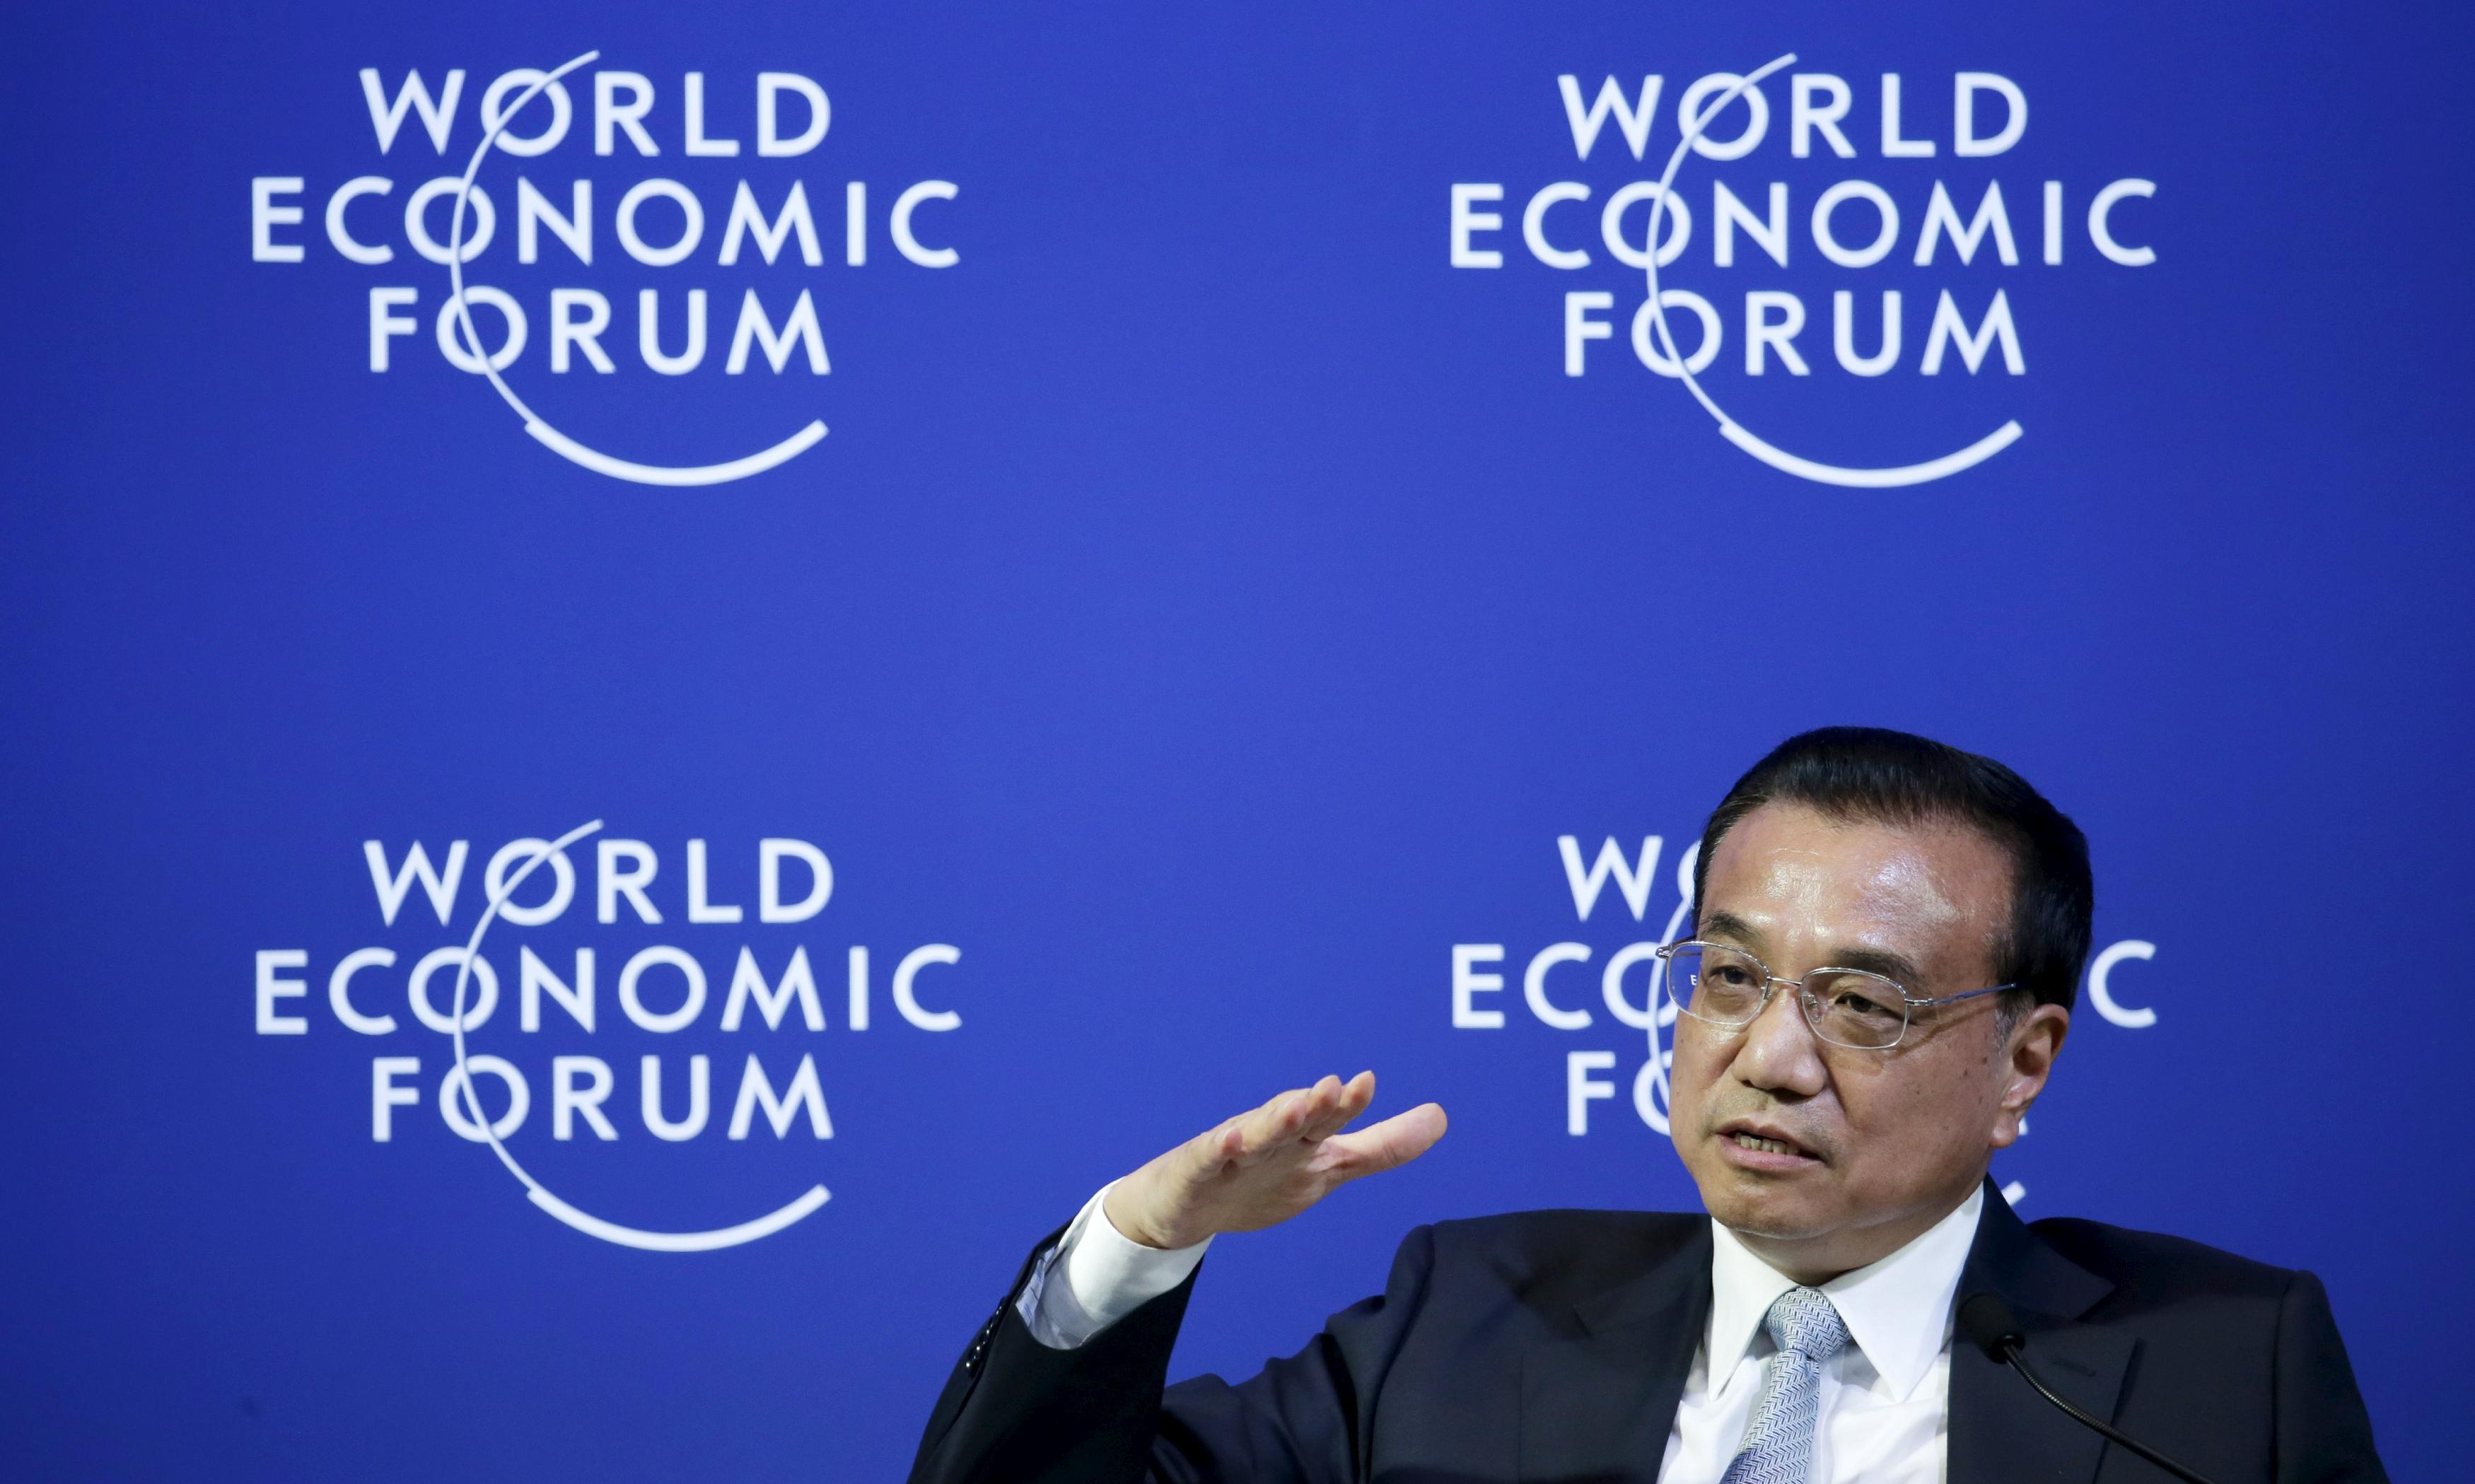 Chinese economy is under pressure but will not slump, says premier Li Keqiang